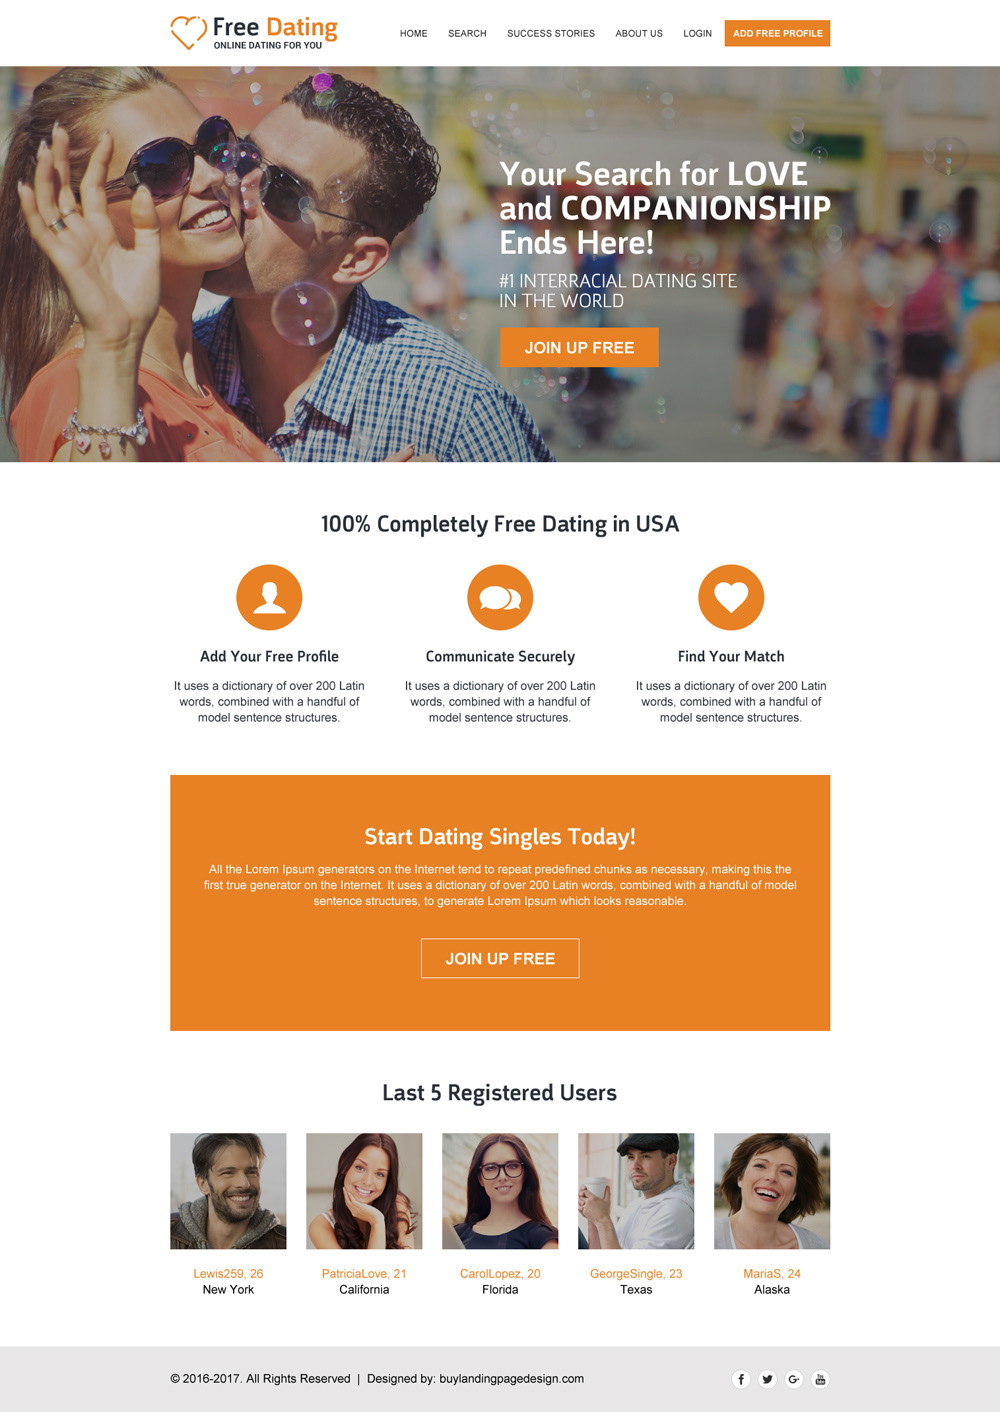 free-online-dating-responsive-website-template-to-create-your-beautiful-dating-website-001-index